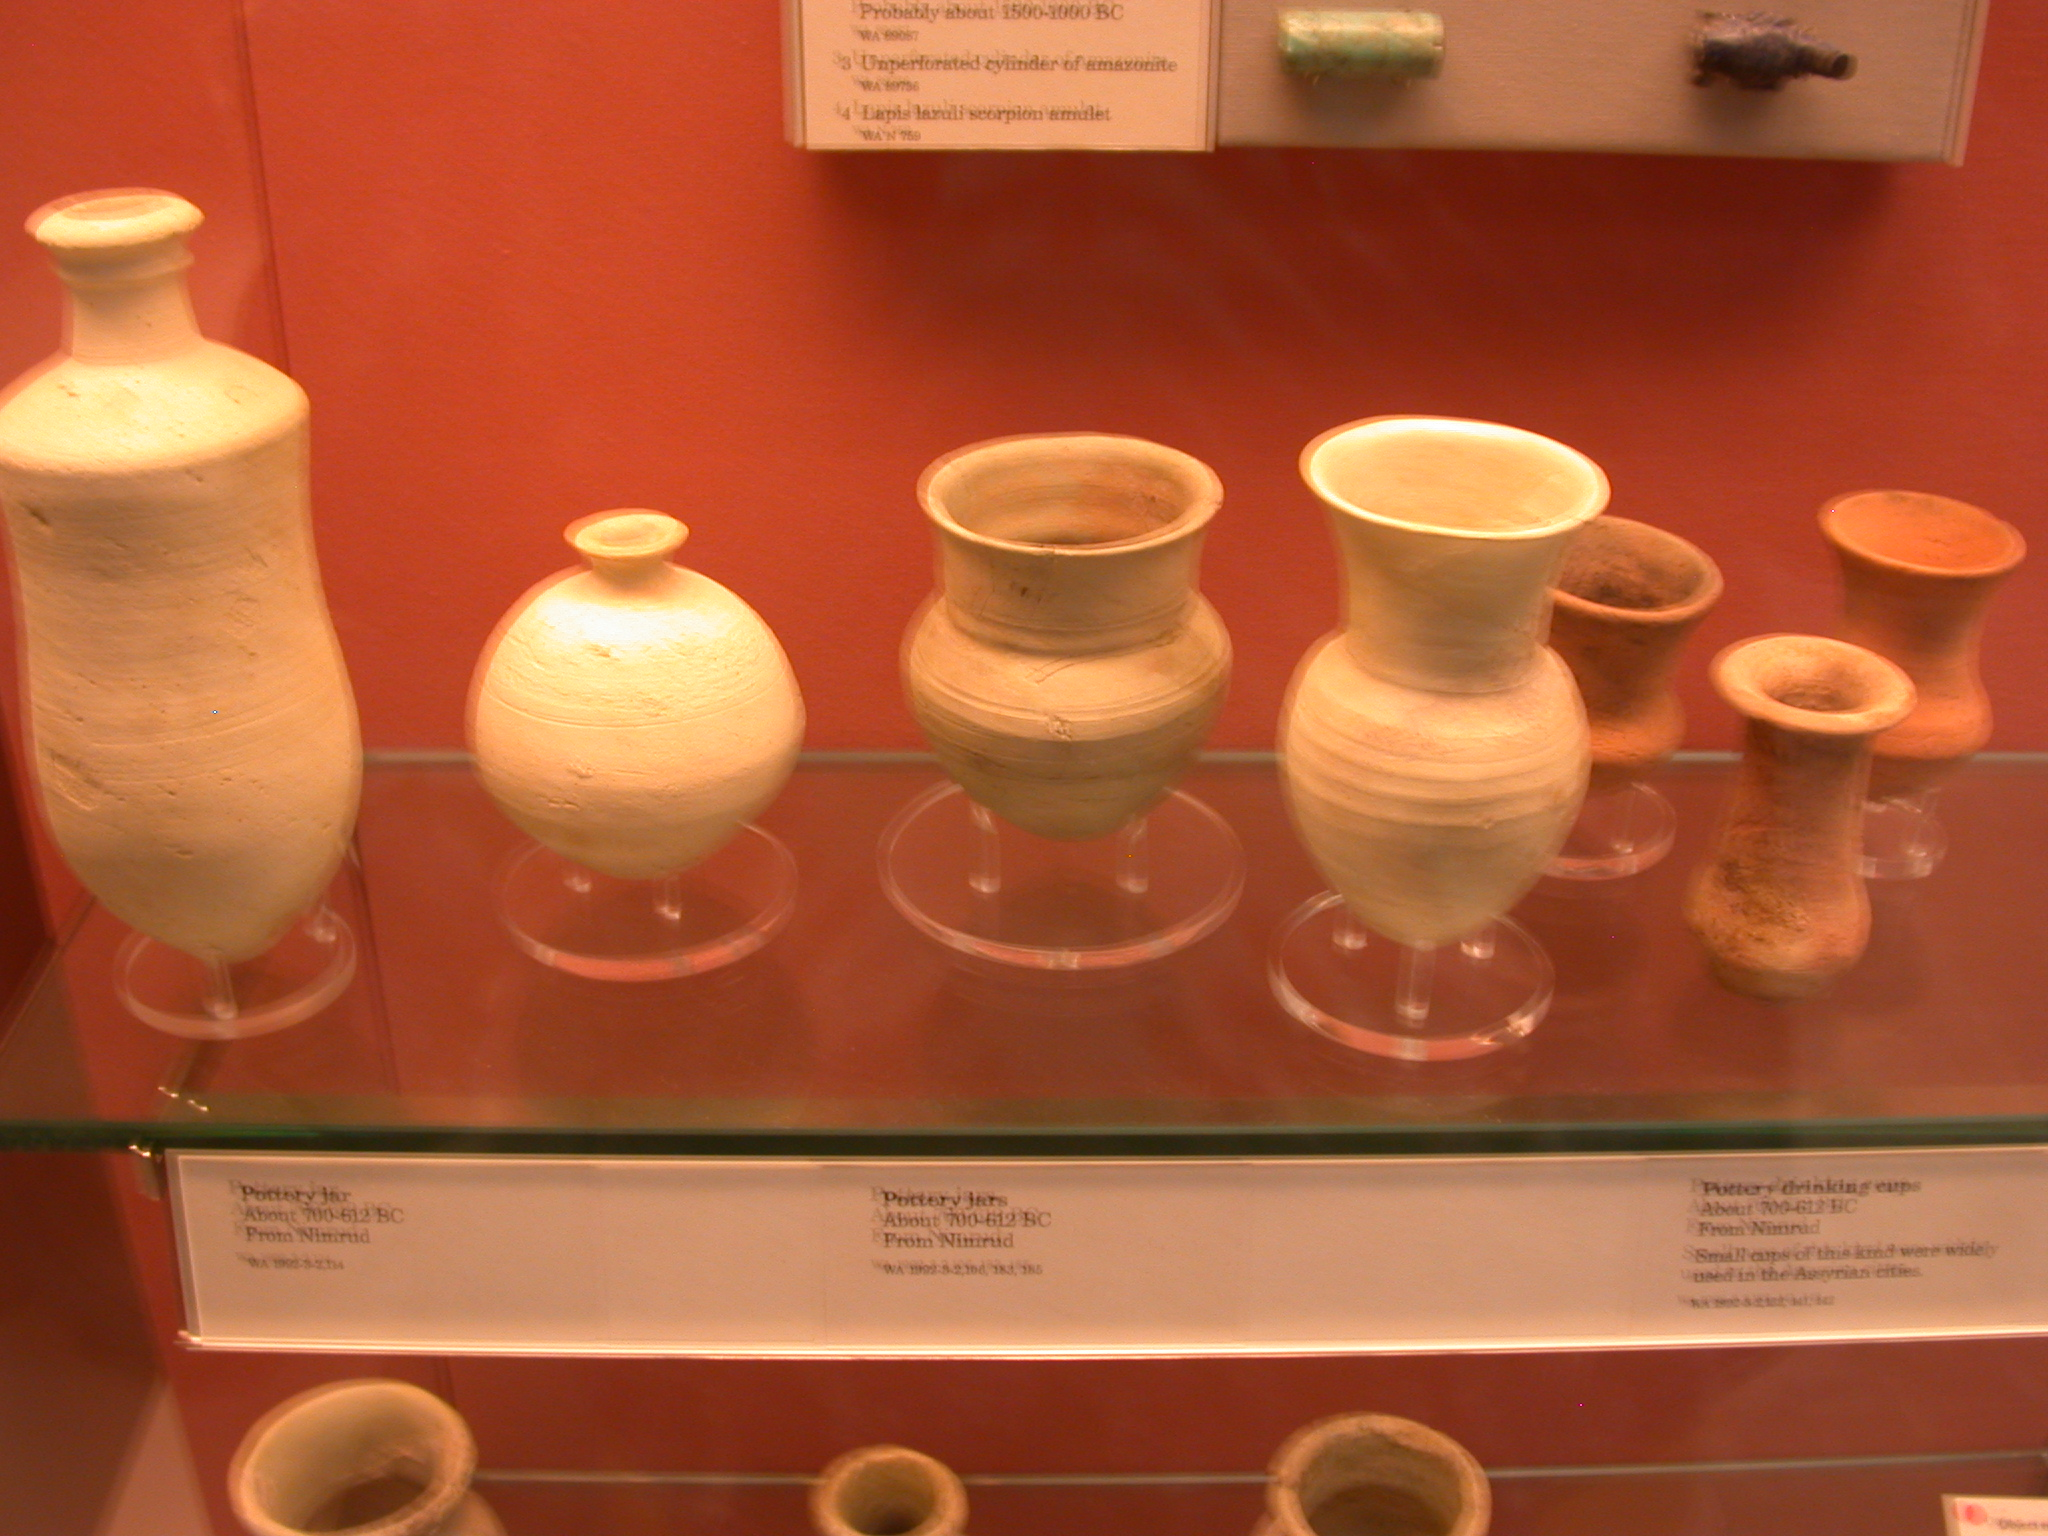 Pottery Jars and Drinking Cups, About 700-612 BCE, Nimrud, Assyria, in British Museum, London, England